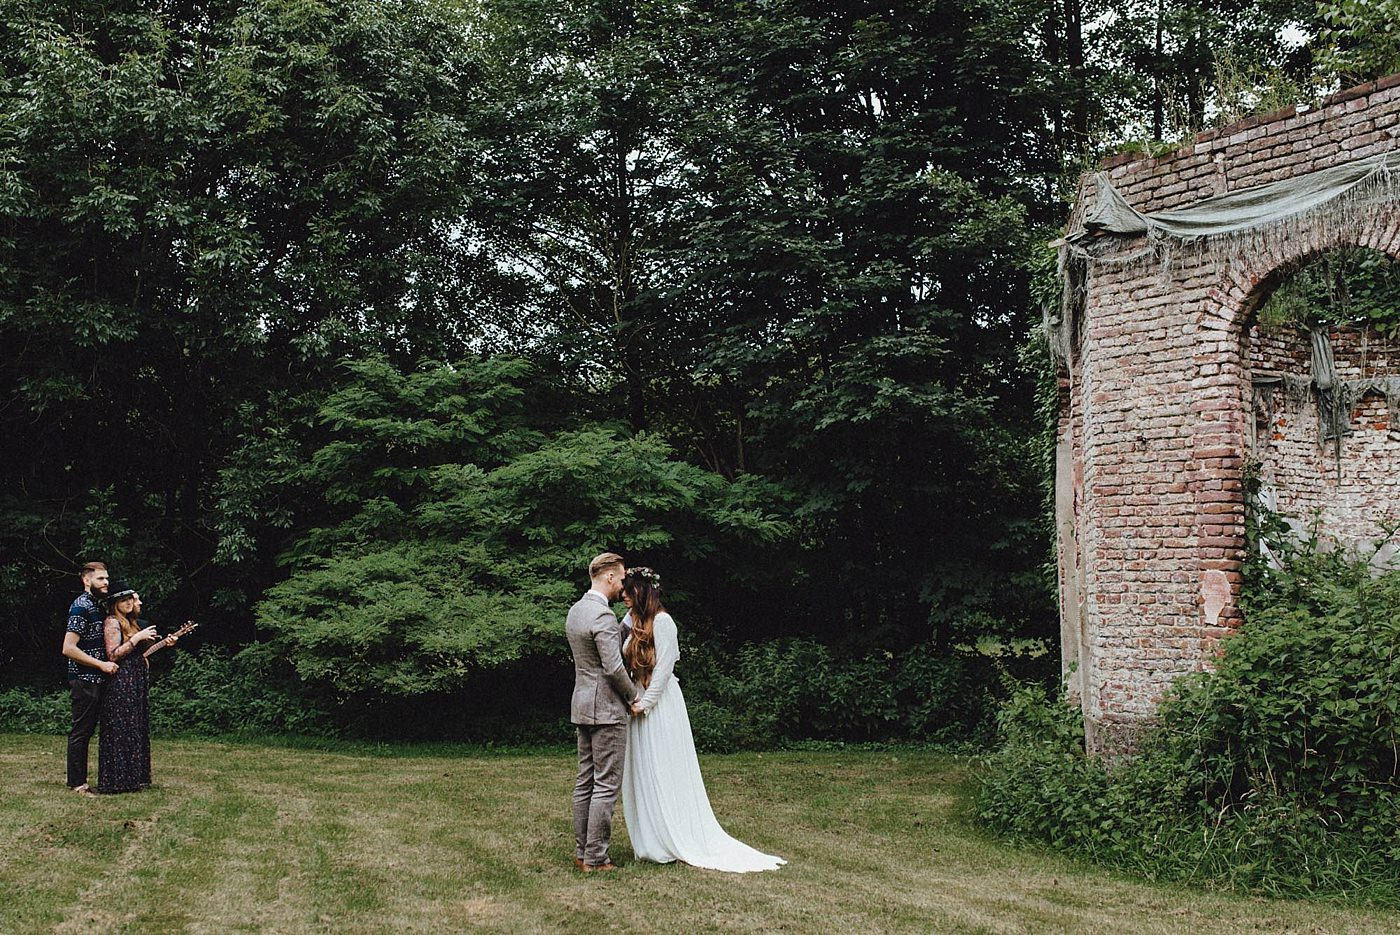 urban-elopement-wedding-126 Merve & Nils emotionales Elopement - Wedding Wesel & Schottlandurban elopement wedding 126 1